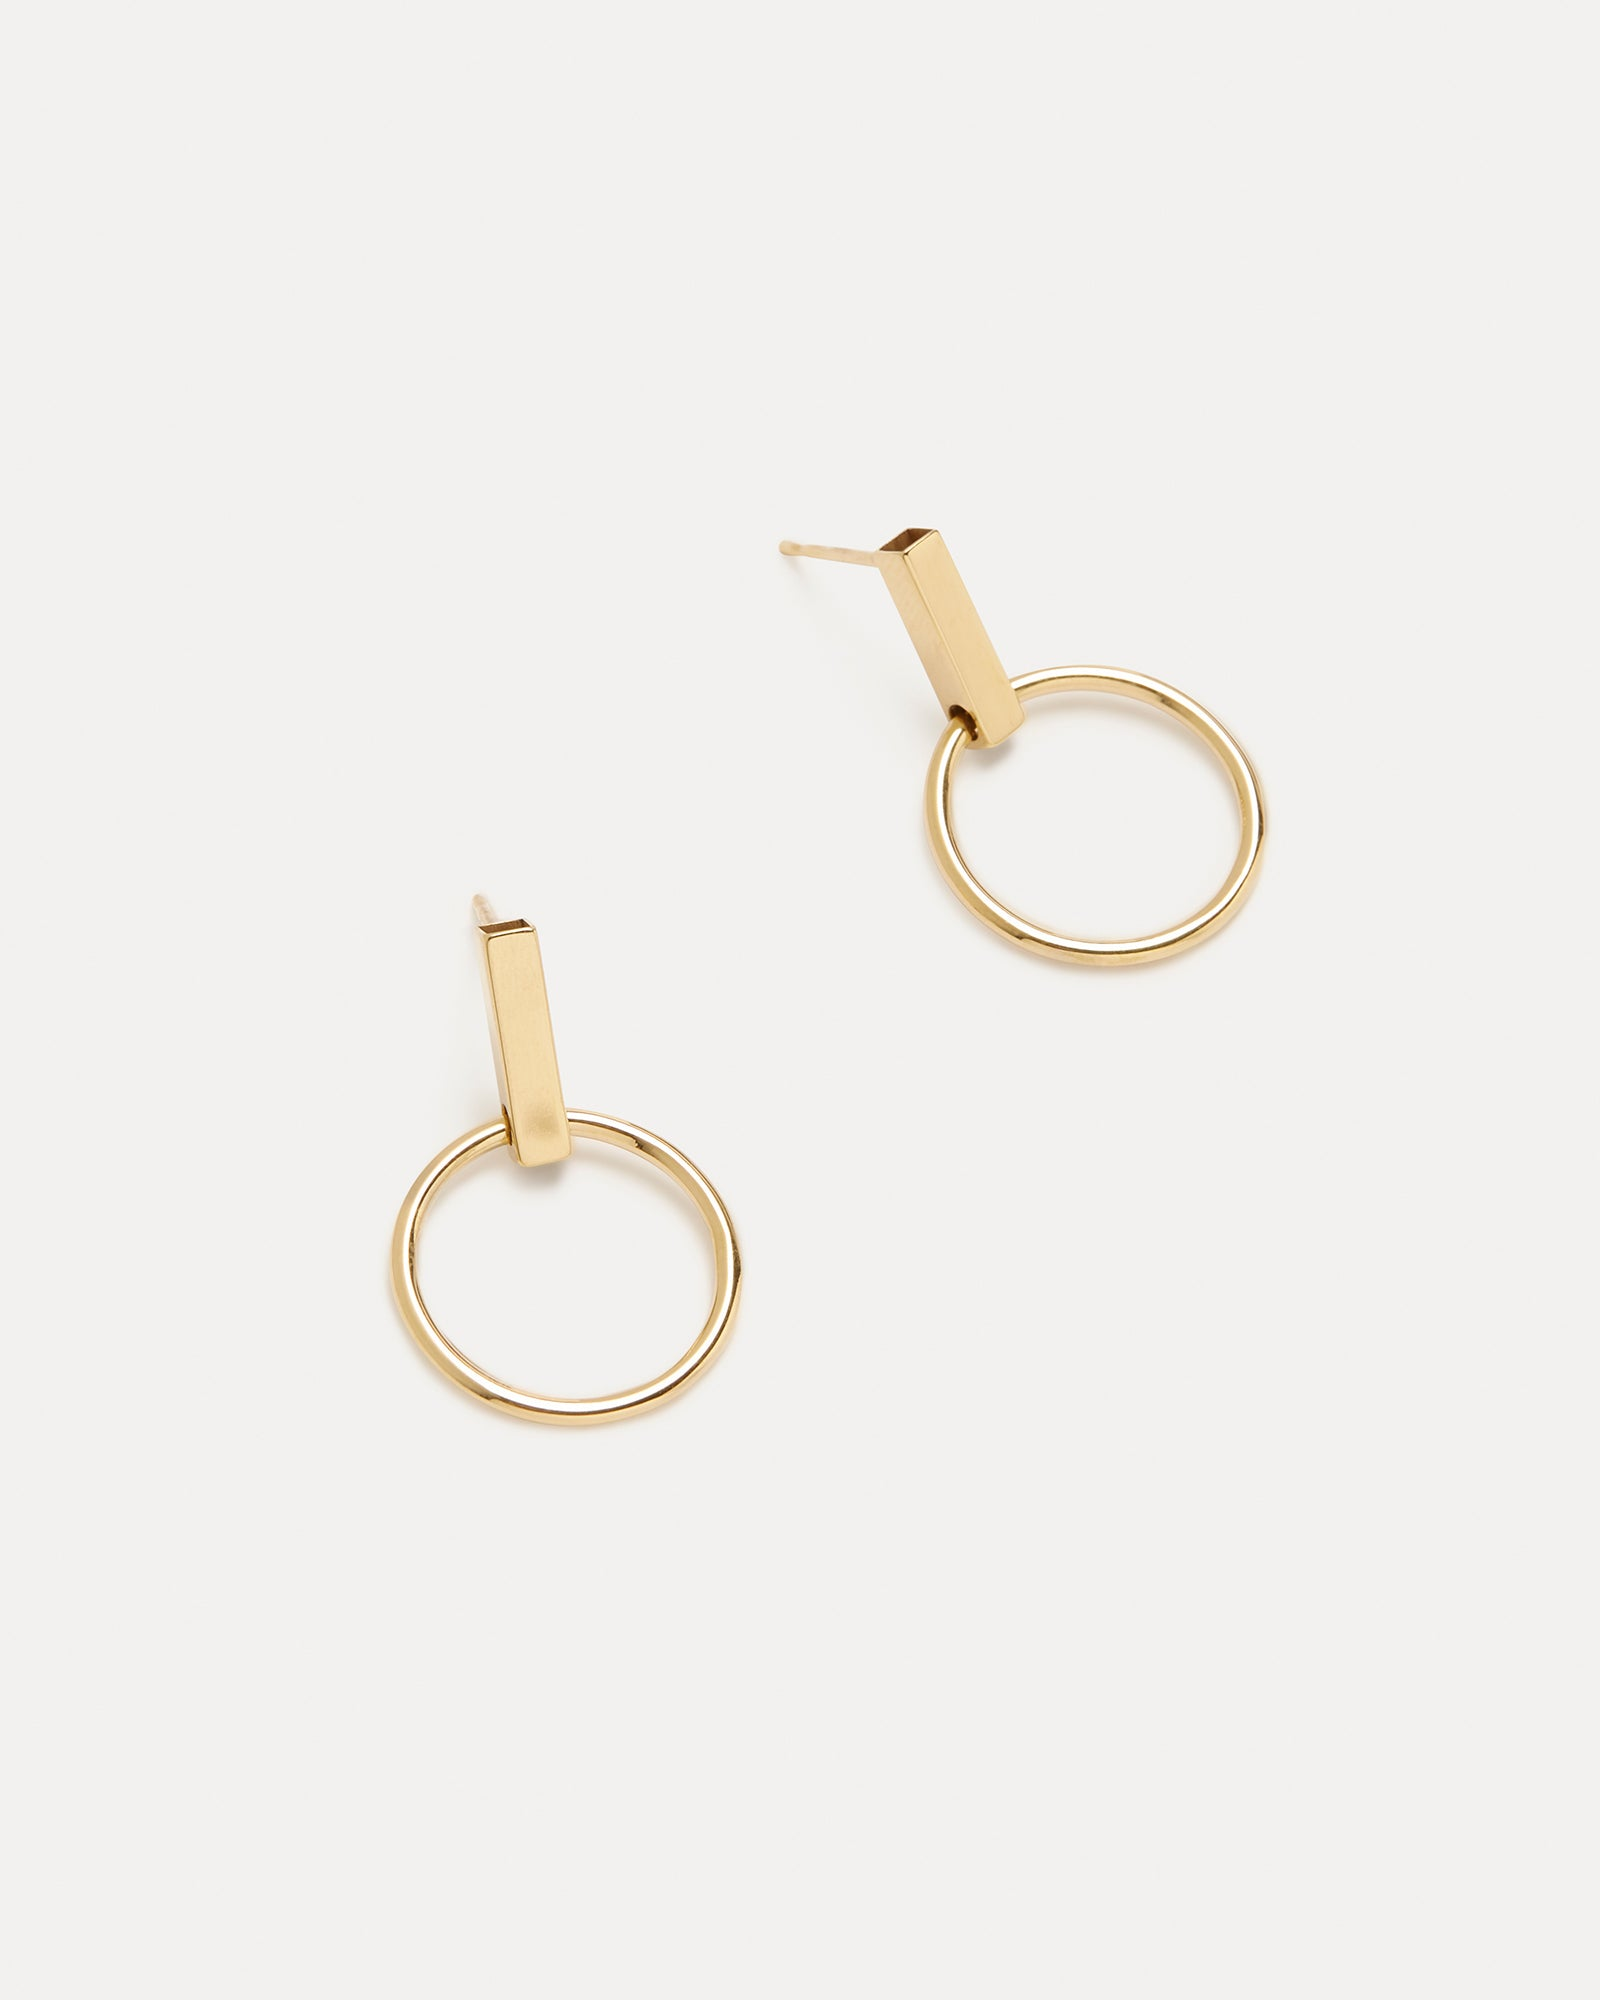 Mini Minimalist Hoops Holly Ryan